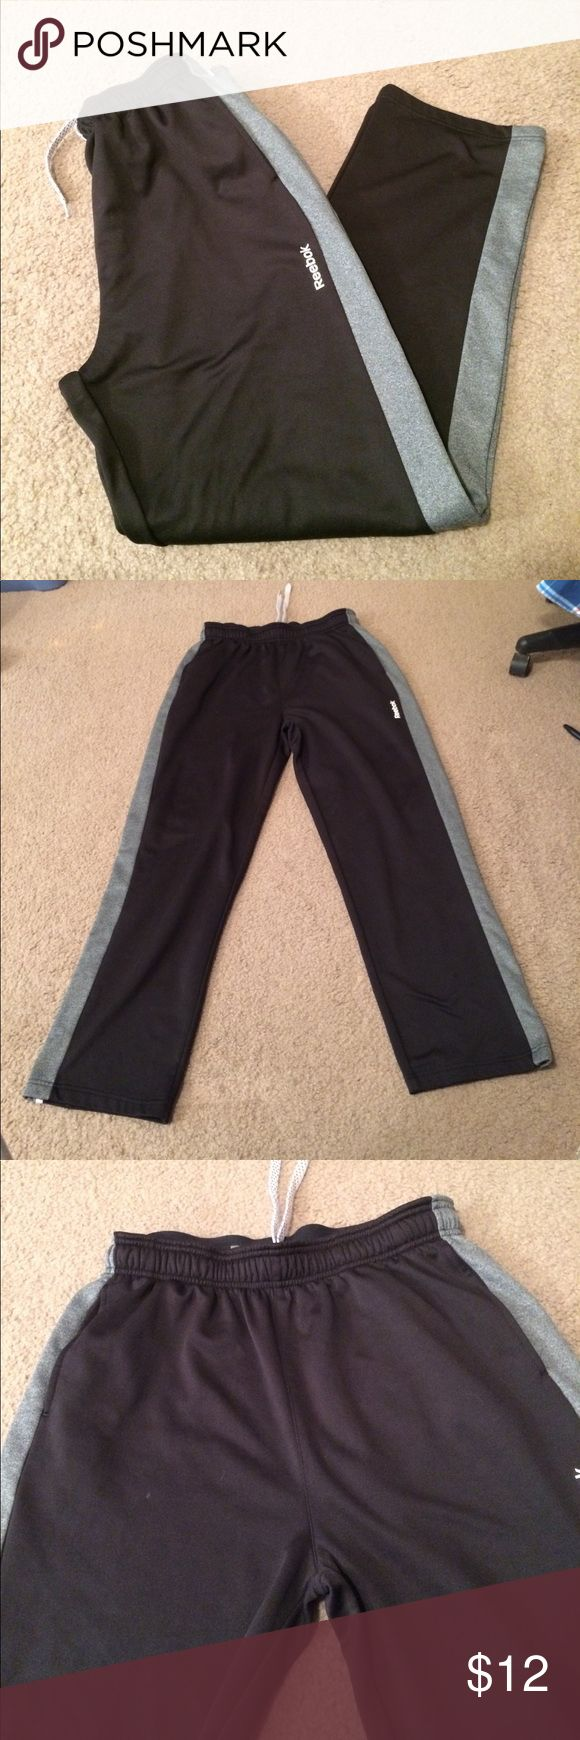 """$8 men's like new reebok athletic pants Like new condition! Probably only worn once. ✔The price in the beginning of the title of my listings is the bundle price. These prices are valid through the """"make an offer"""" feature after you create a bundle. These bundle orders must be over $15. Ask me about more details if interested.  ❌No trades ❌No holds Reebok Pants Sweatpants & Joggers"""